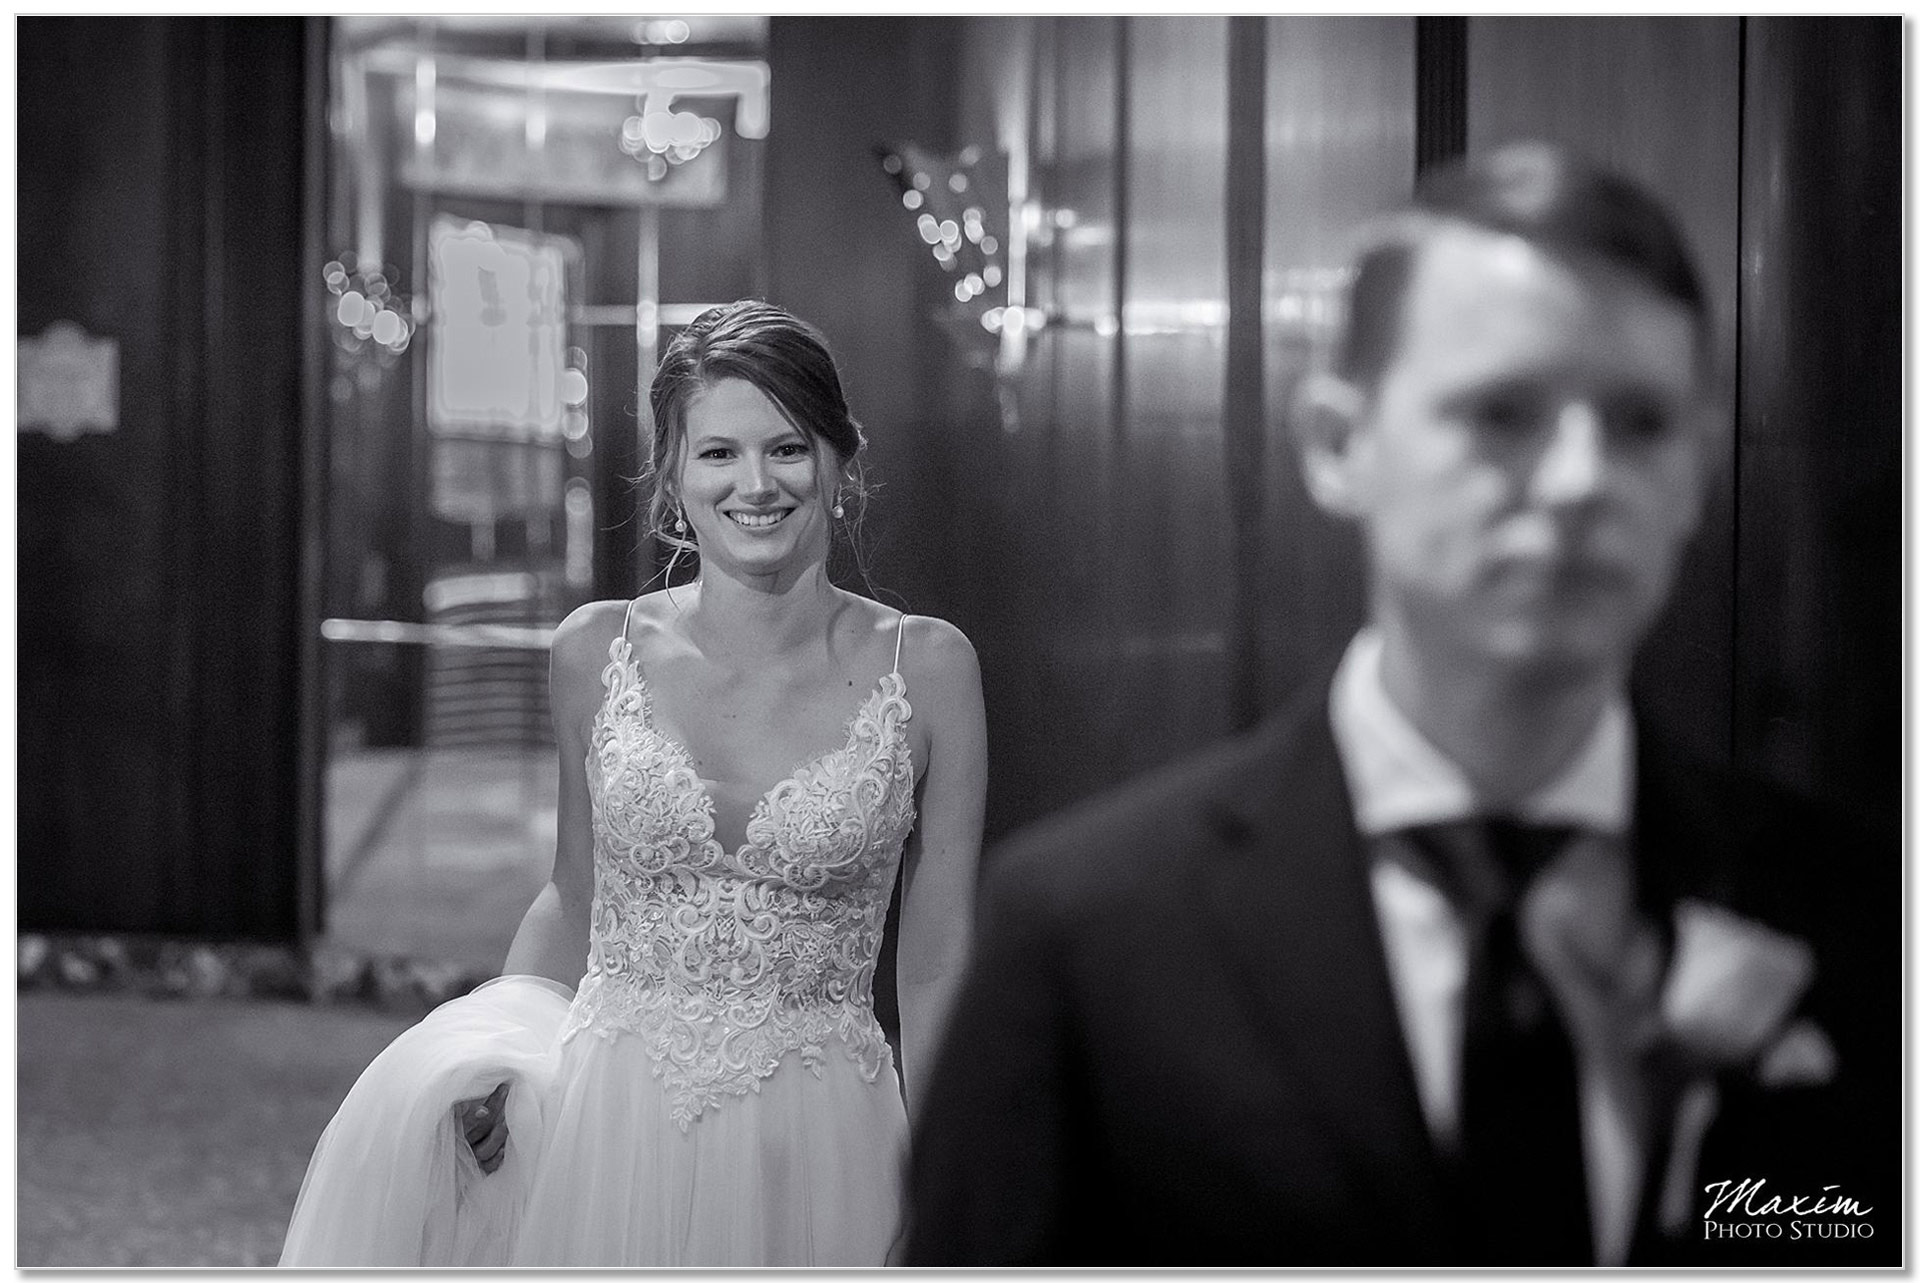 Hilton Netherland Plaza Hotel Bride Groom First look